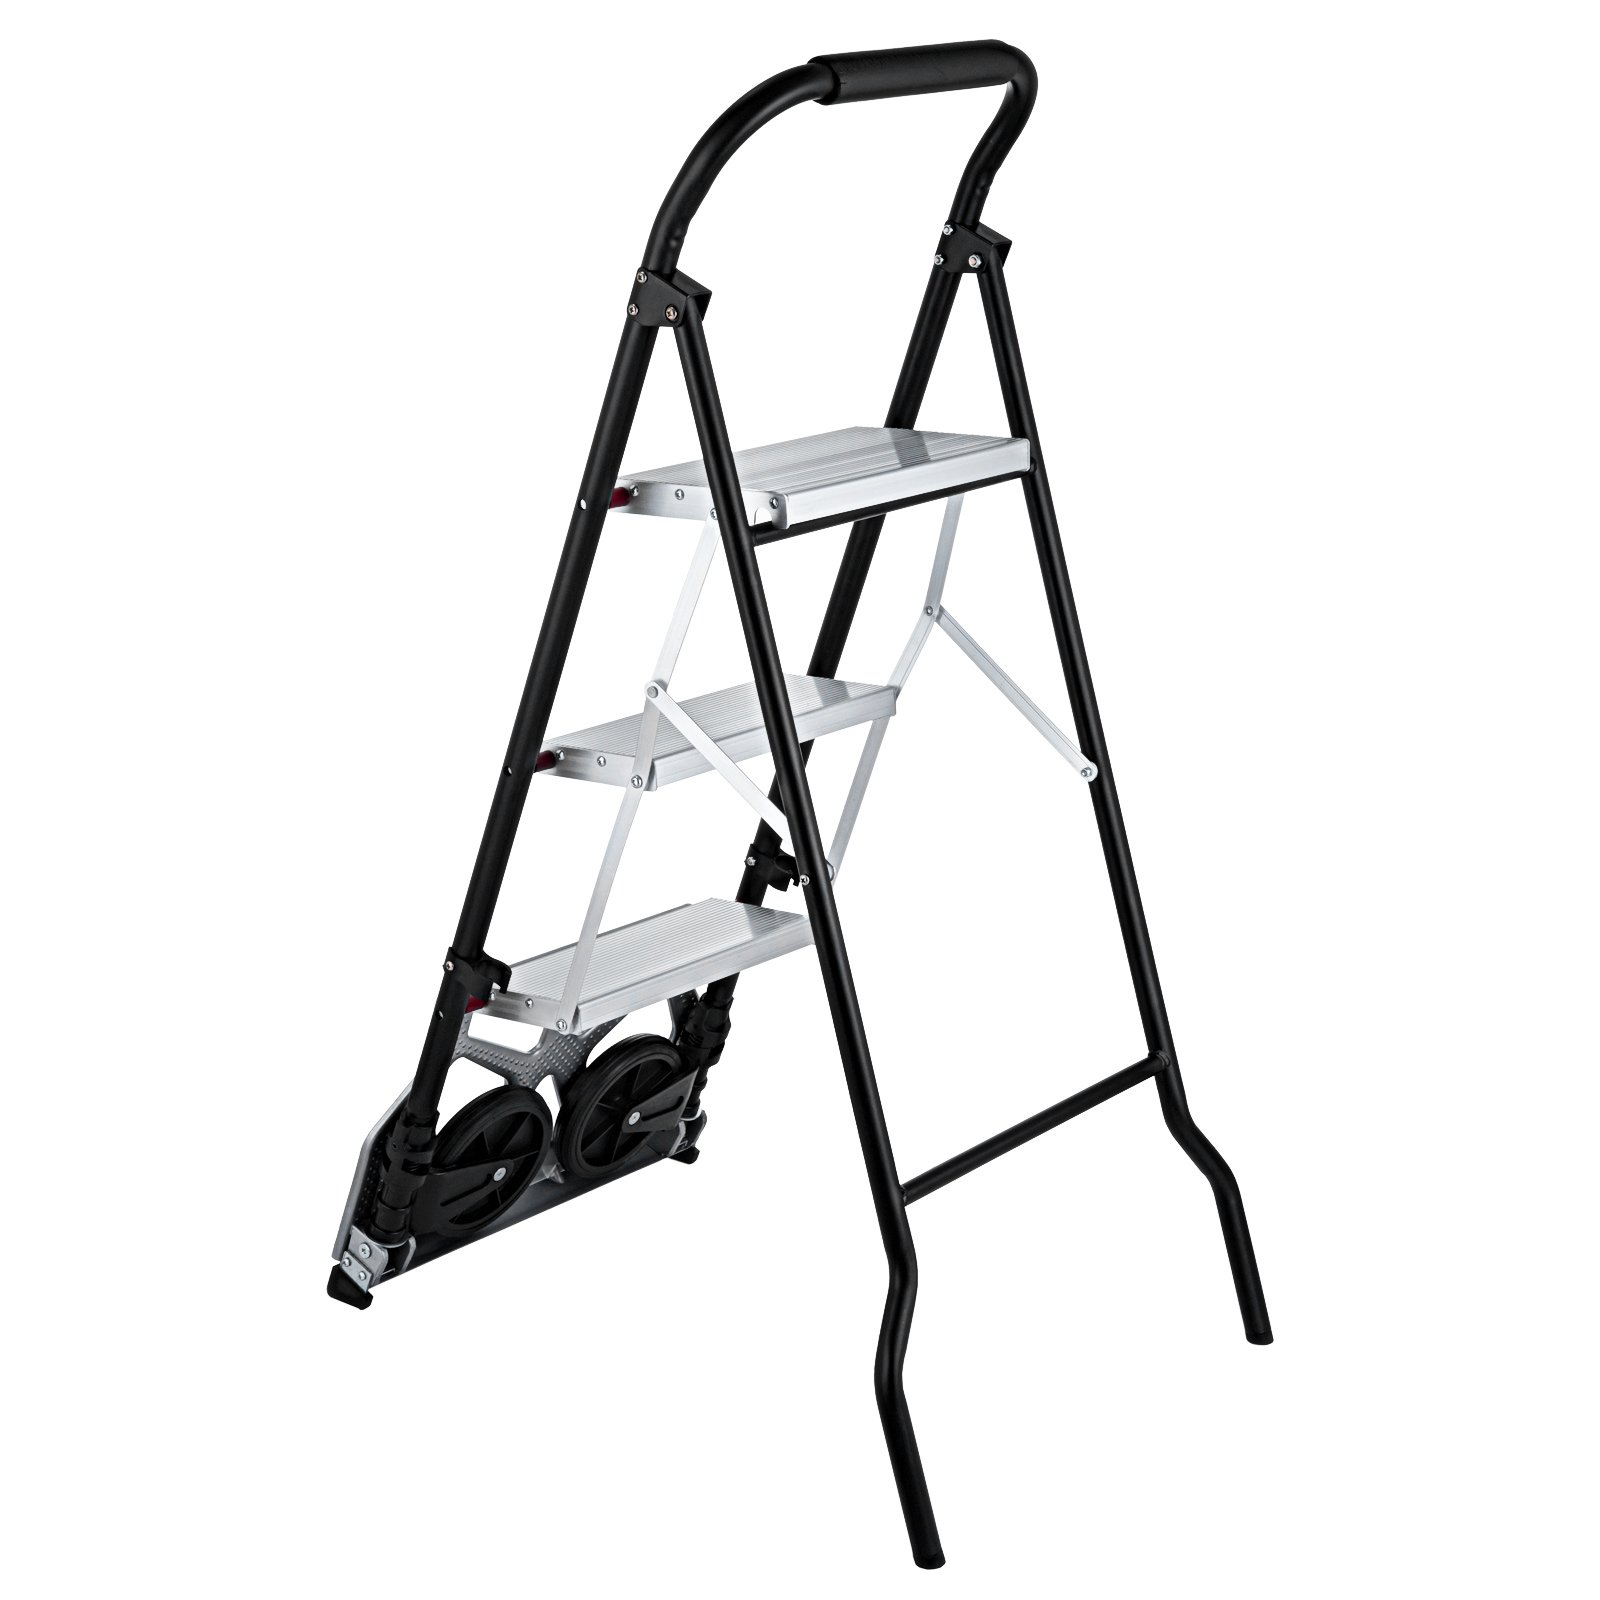 OrangeA 3-Steps Ladder Cart 2-in-1 Convertible Step Ladder Folding Hand Truck with Trolley by OrangeA (Image #8)